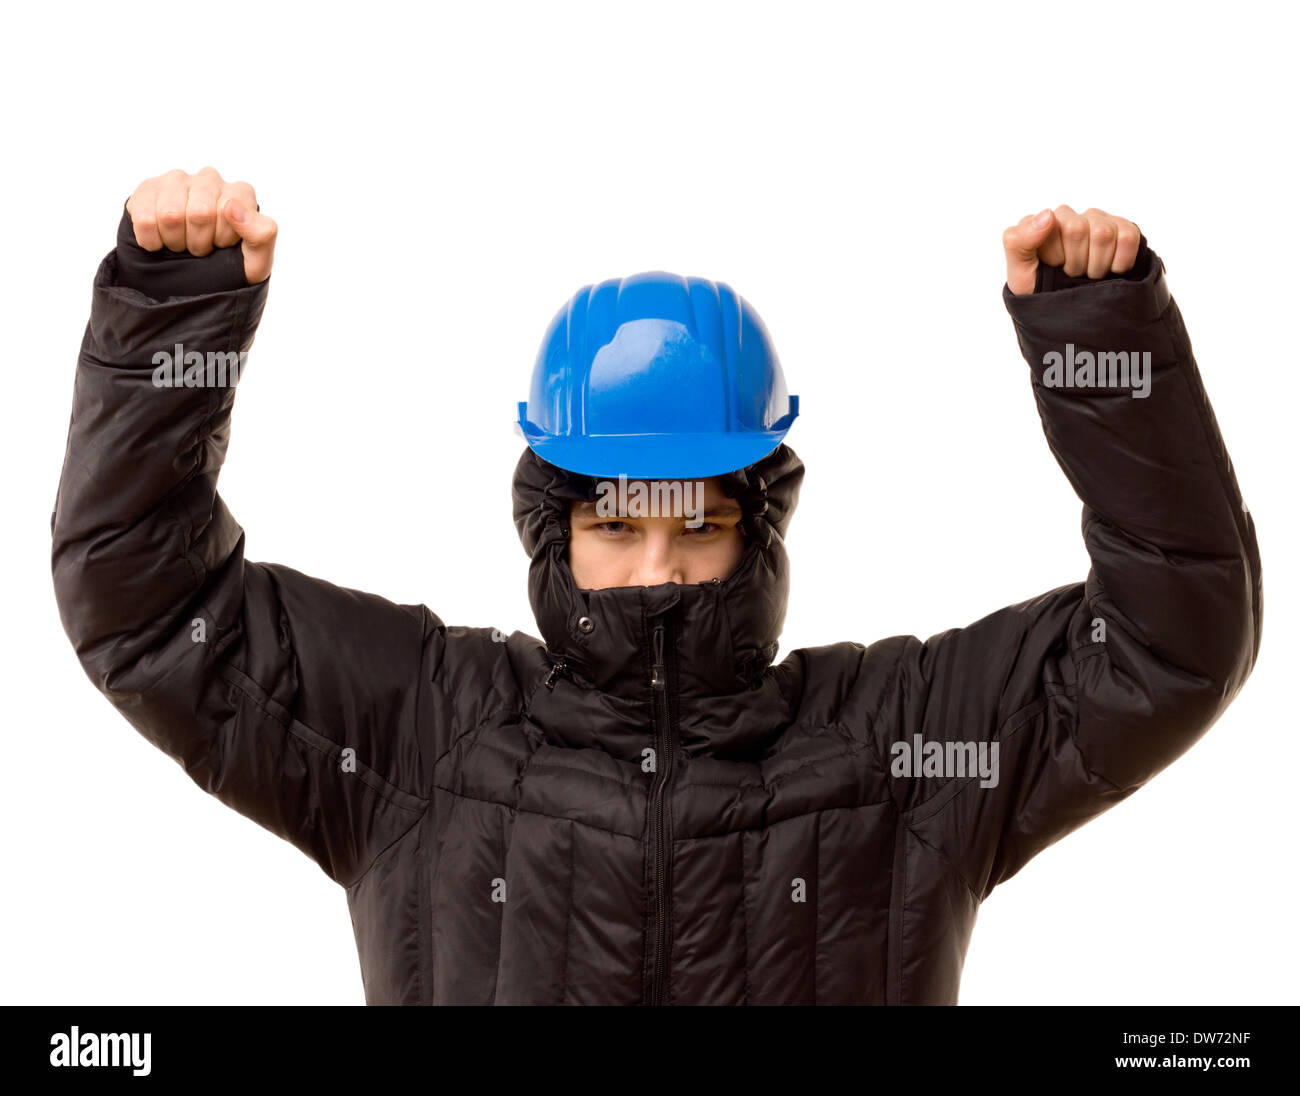 Belligerent young thug raising his arms in a threatening gesture as he stands glaring malevolently in a black balaclava and hardhat, on white. - Stock Image